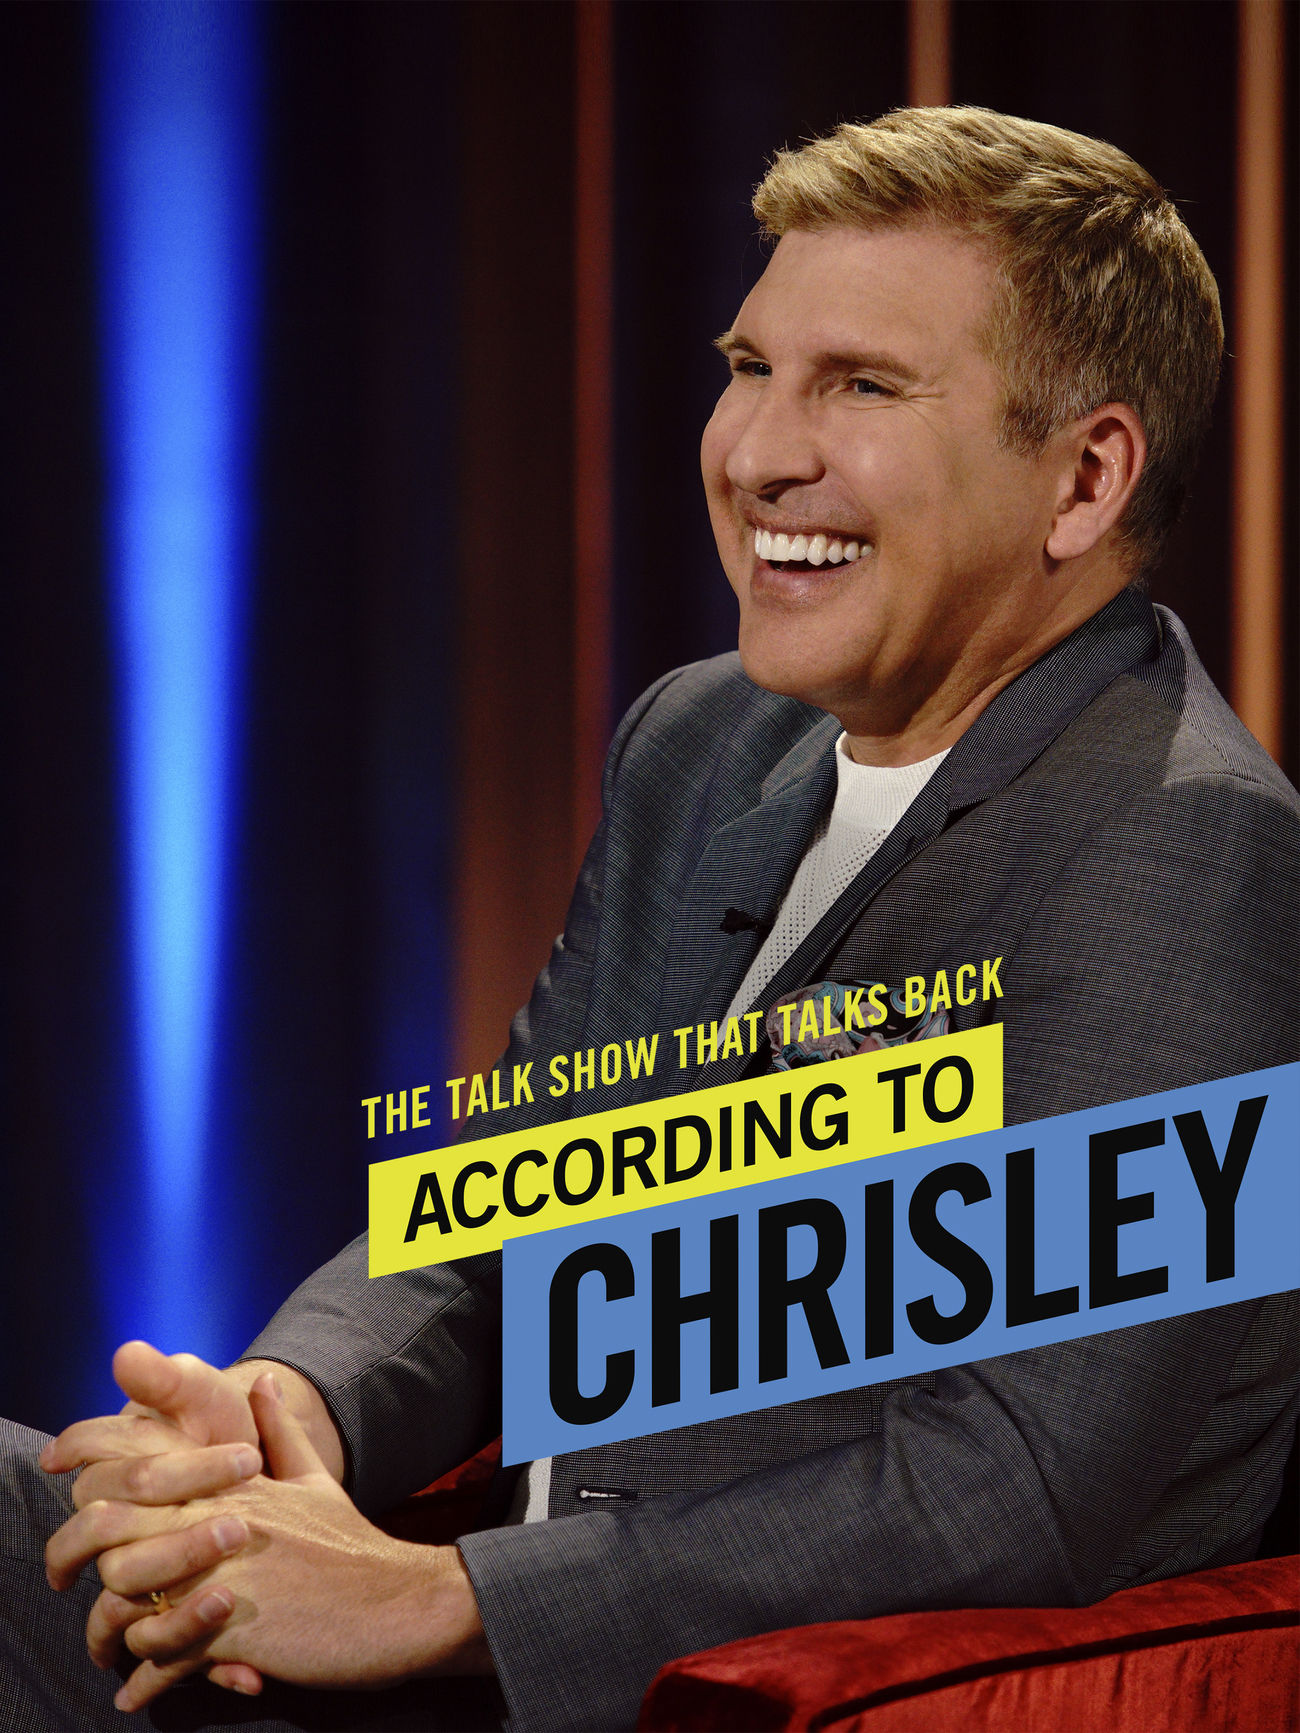 According to Chrisley cover